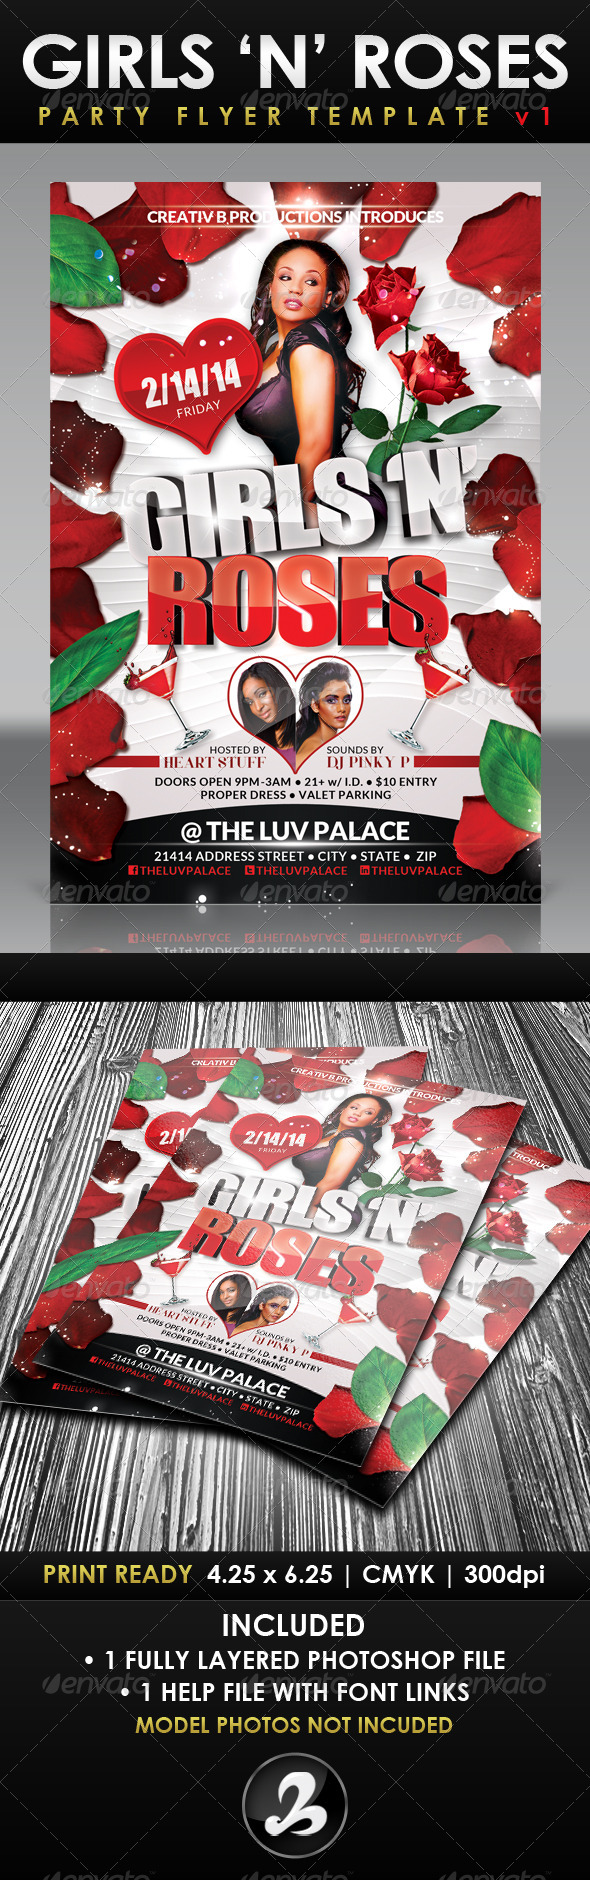 Girls 'N' Roses Valentine's Day Flyer Template 1 - Holidays Events